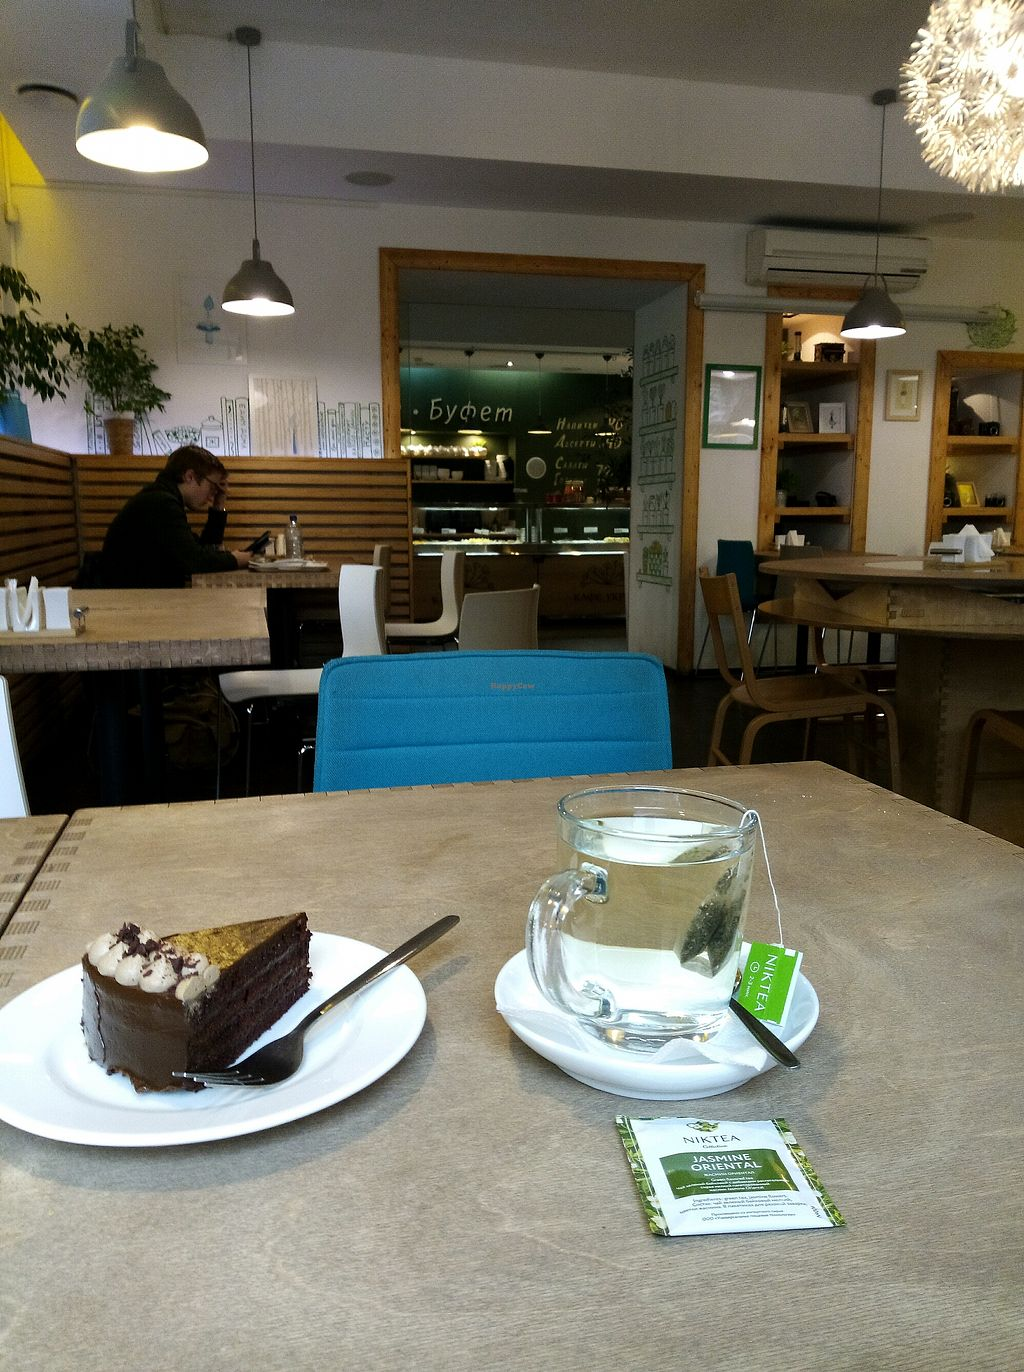 """Photo of Cafe Ukrop  by <a href=""""/members/profile/Sammylee"""">Sammylee</a> <br/>cafe <br/> April 24, 2018  - <a href='/contact/abuse/image/35392/390594'>Report</a>"""